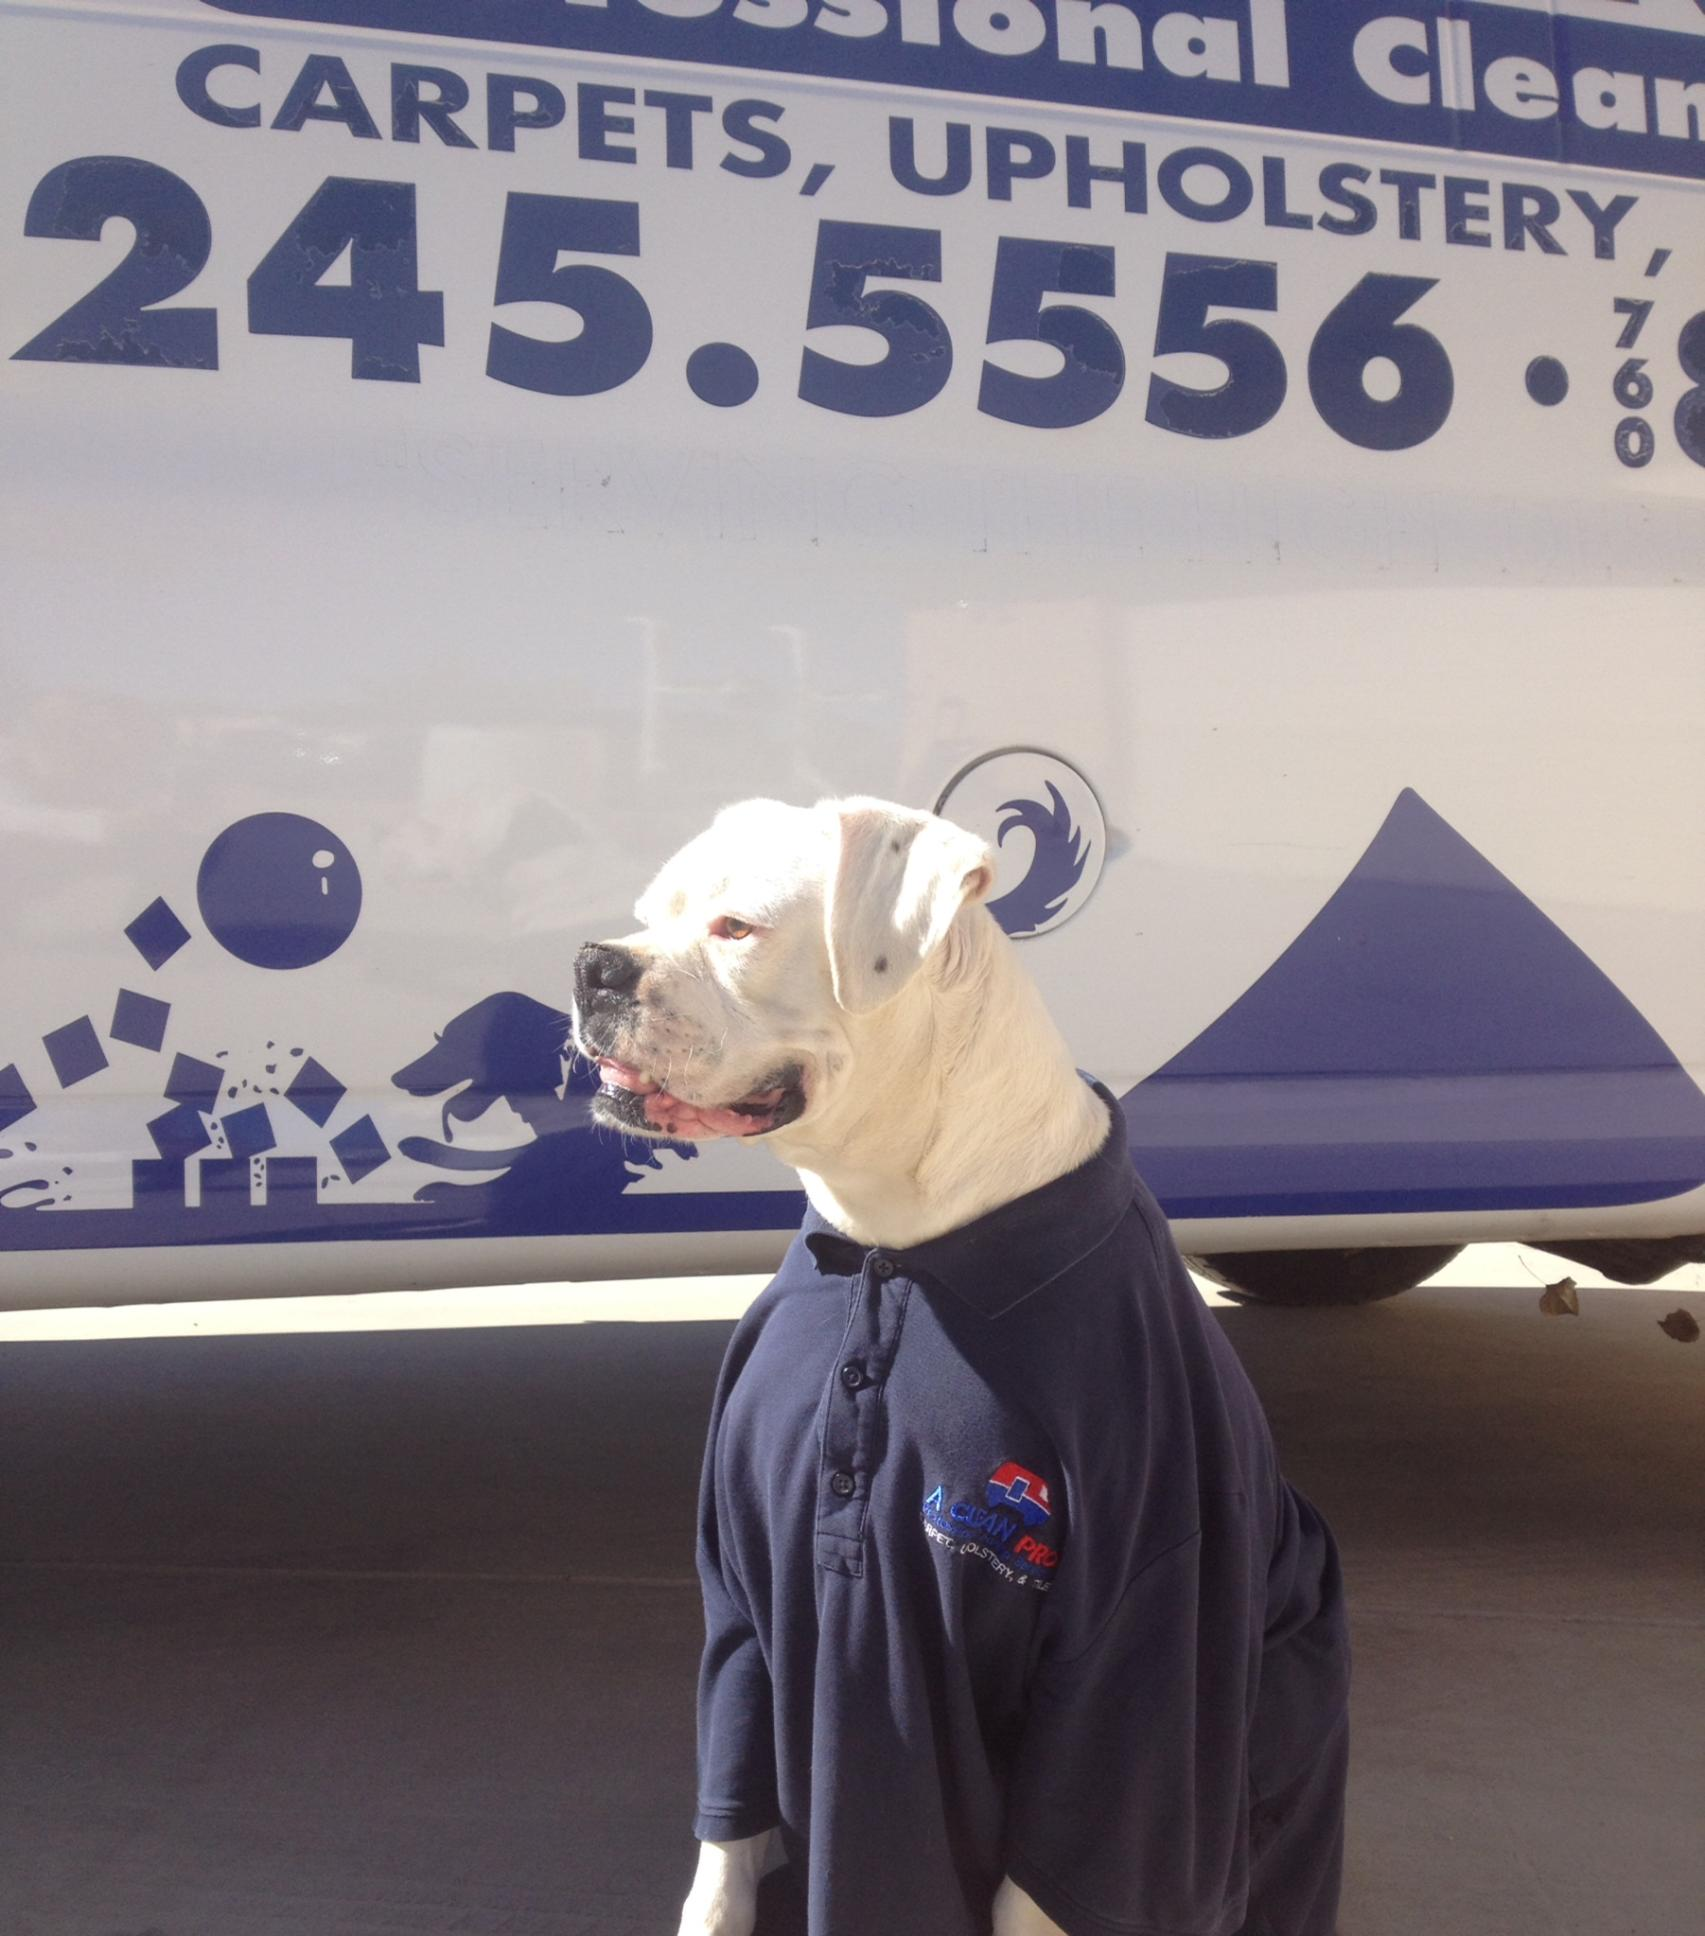 Mascot Carpet Cleaning Victorville